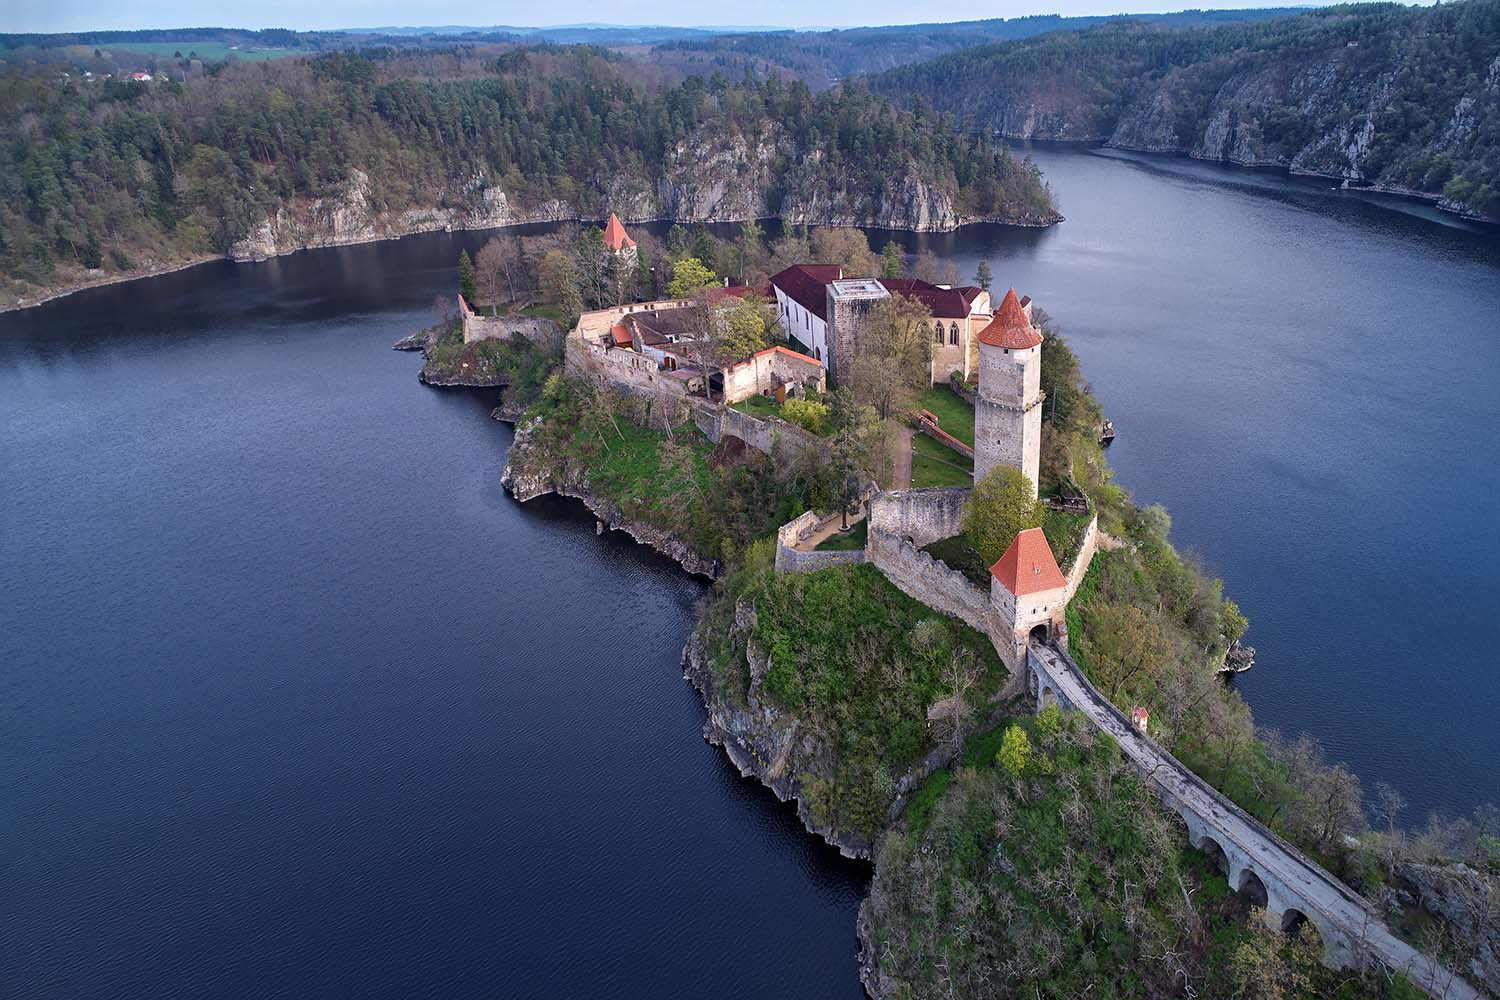 Aerial view on czech medieval secular castle Zvikov, situated on rocky outcrop above the confluence of two rivers in the centre of beautiful, spring nature.